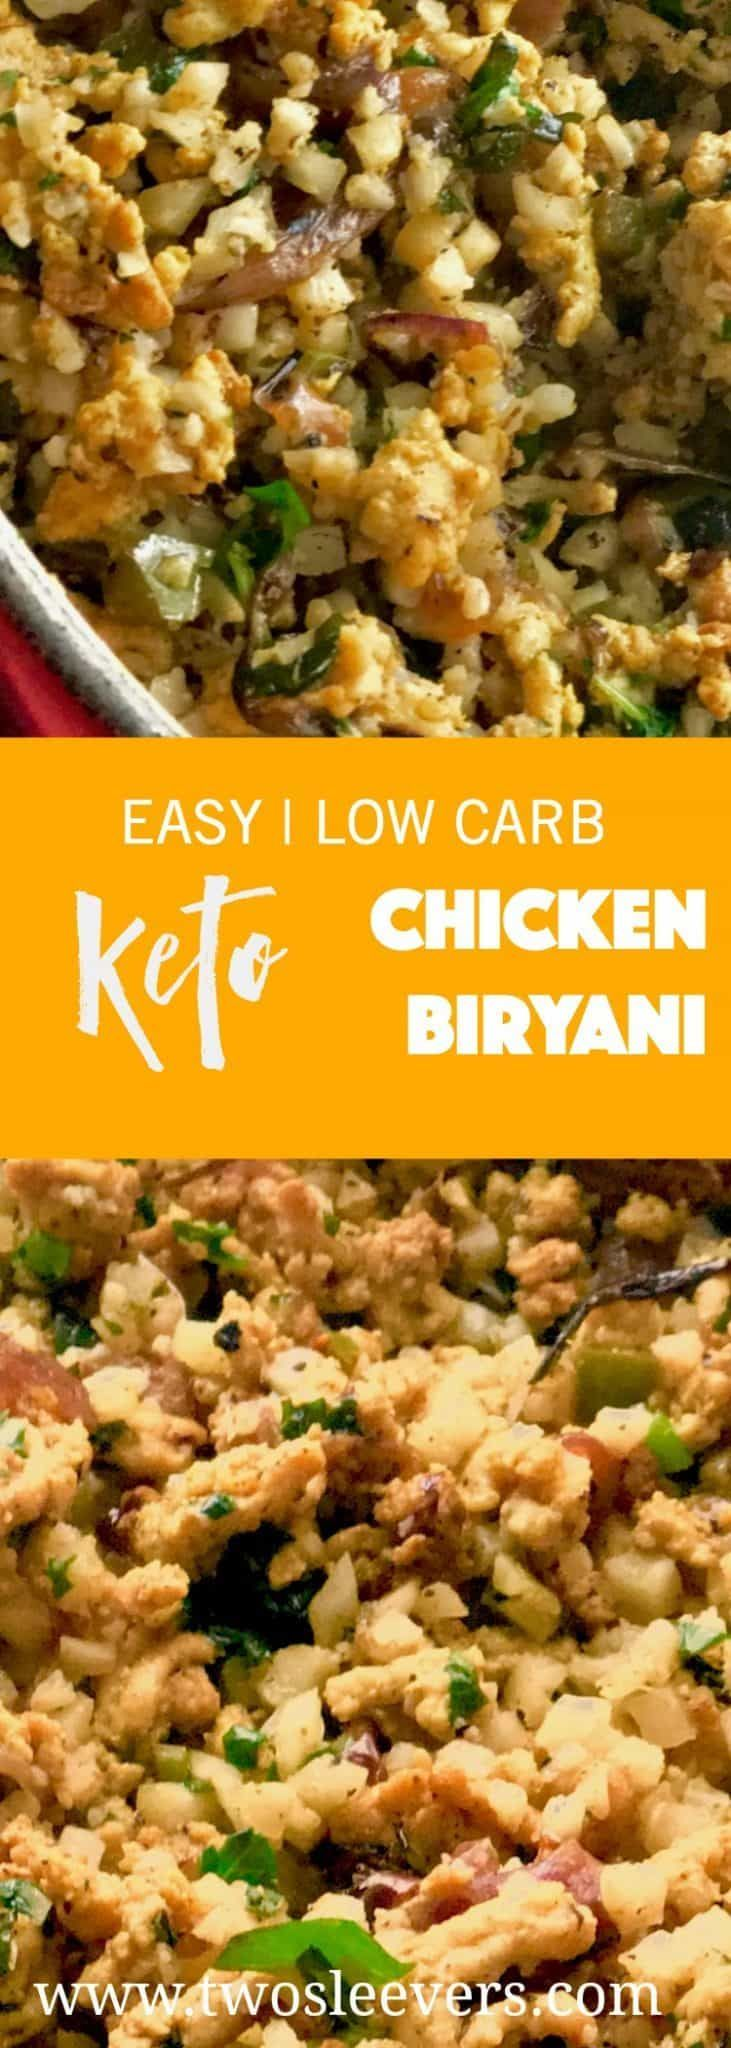 Low Carb Chicken Biryani is Low-Carb Indian Food at it's best.  Cauliflower and ground chicken make up this spicy, delicious low carb recipe. via @twosleevers